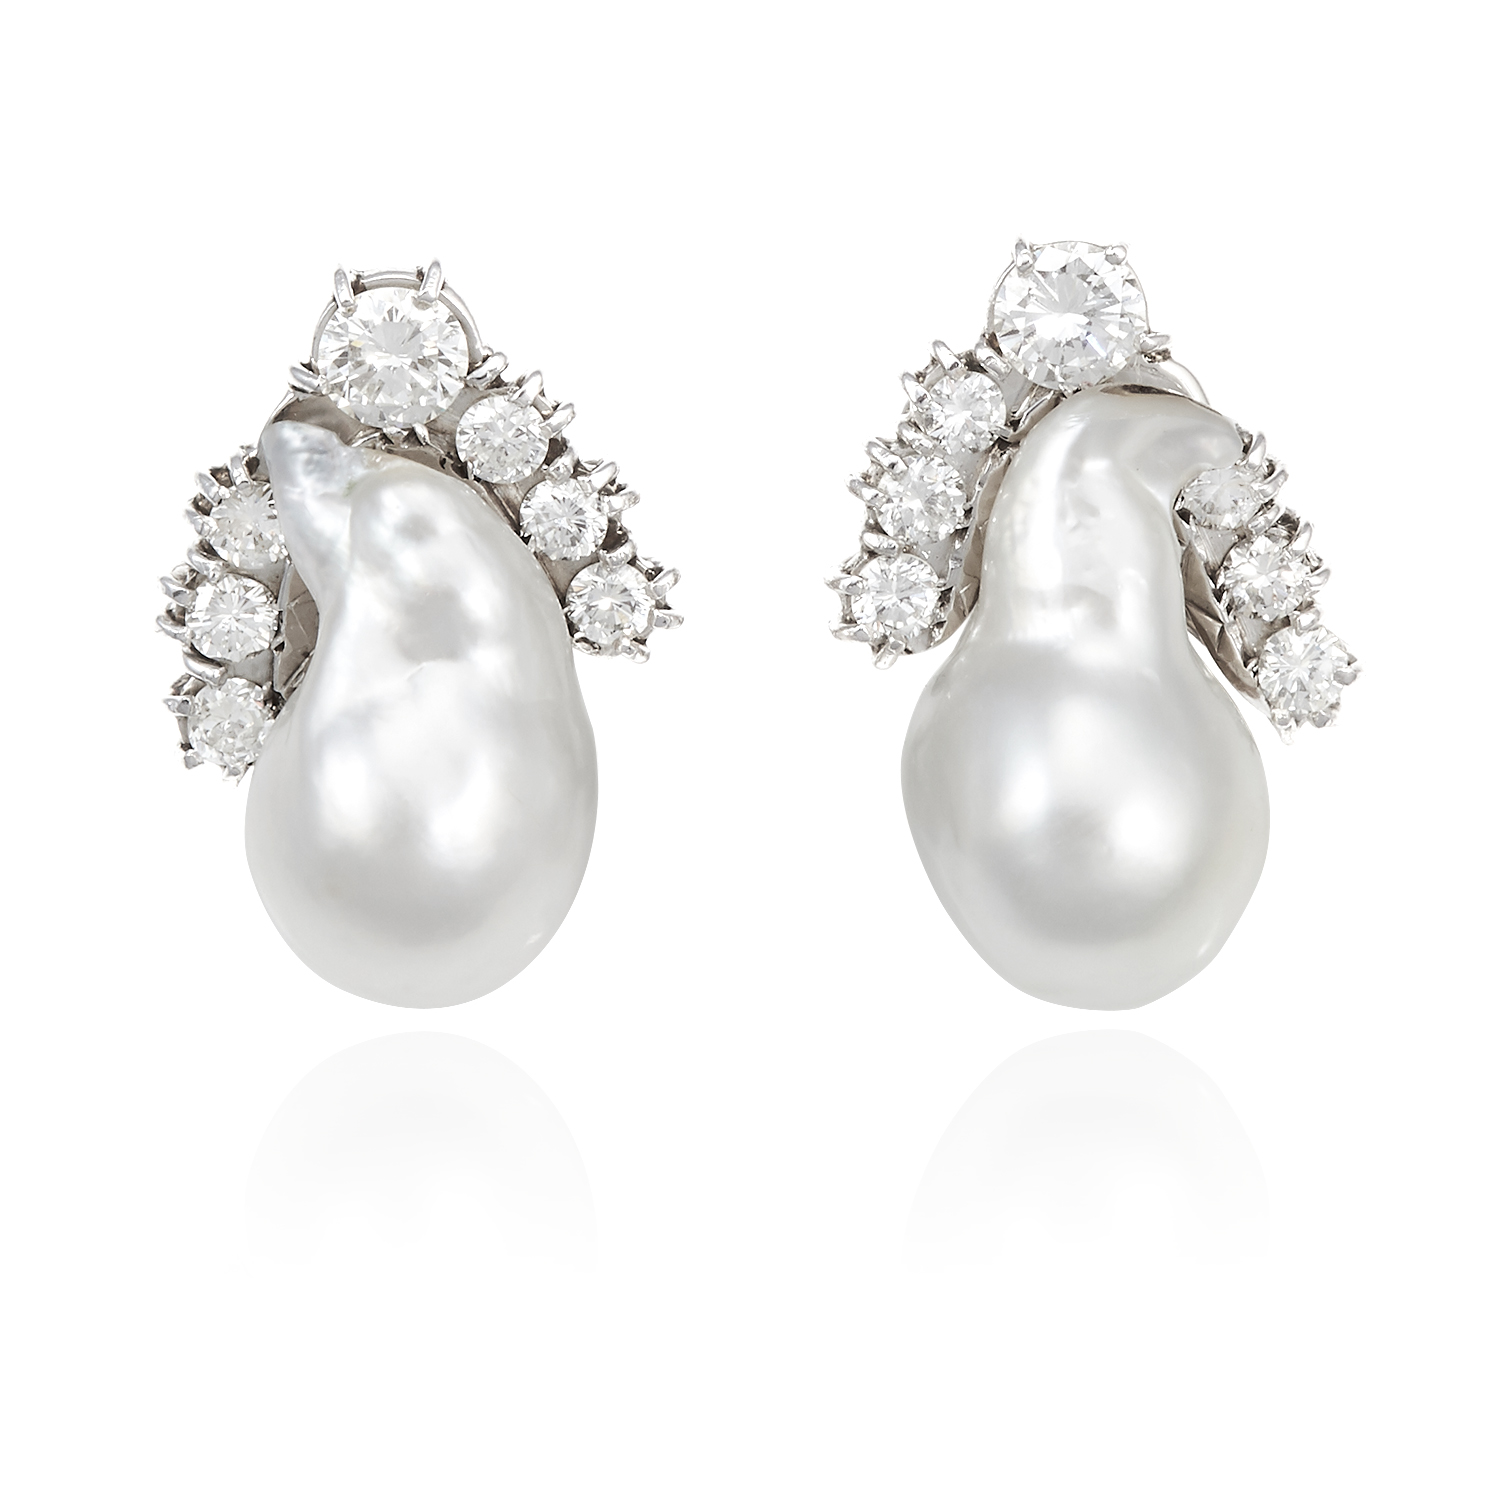 Los 25 - A PAIR OF PEARL AND DIAMOND EARRINGS in white gold, each set with a baroque pearl of 19.5-20.0mm